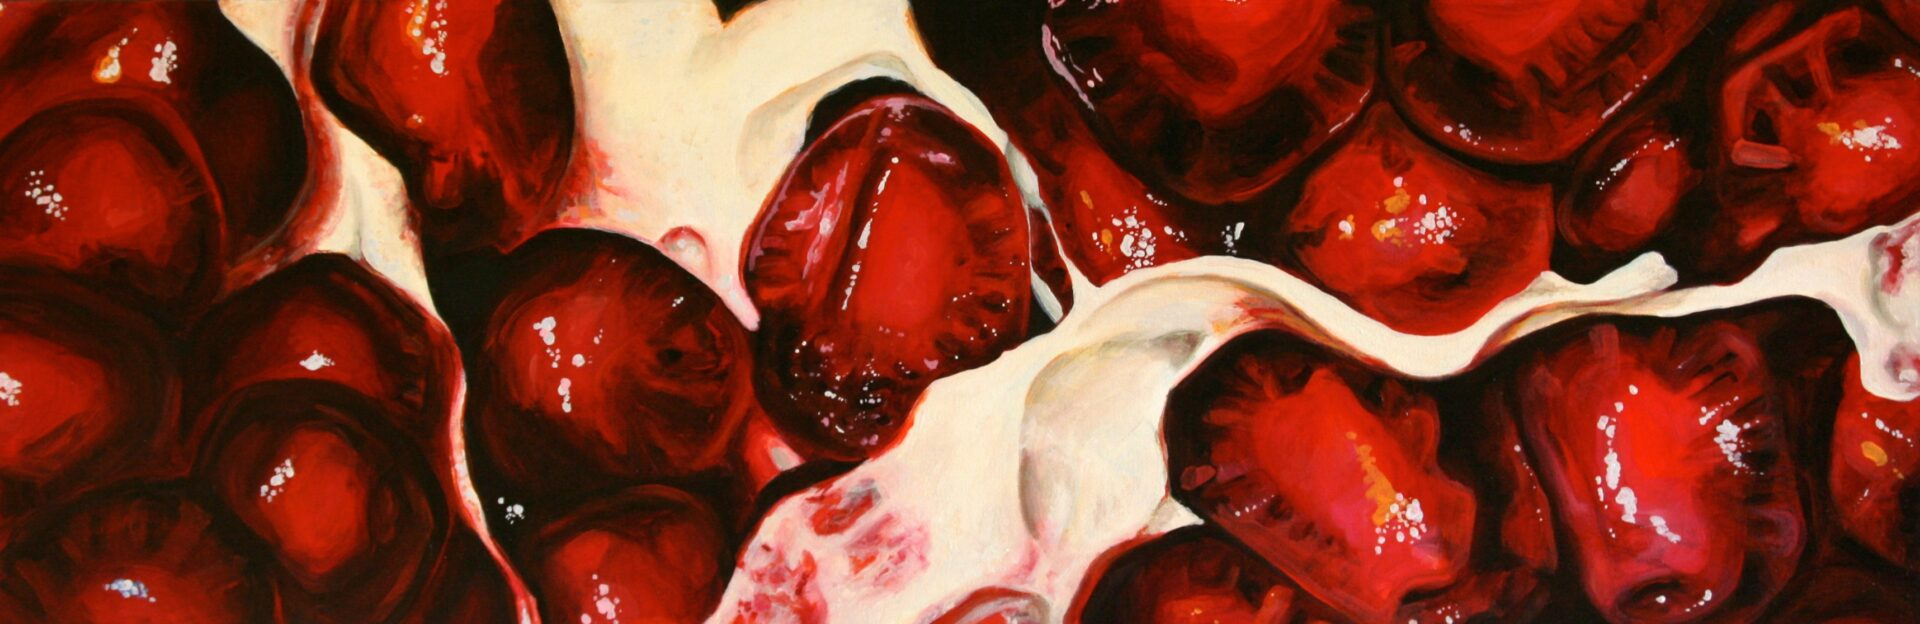 """Angela Faustina, Pomegranate XIV, 2014-2015. Oil on canvas, 36"""" by 12"""". Private collection."""